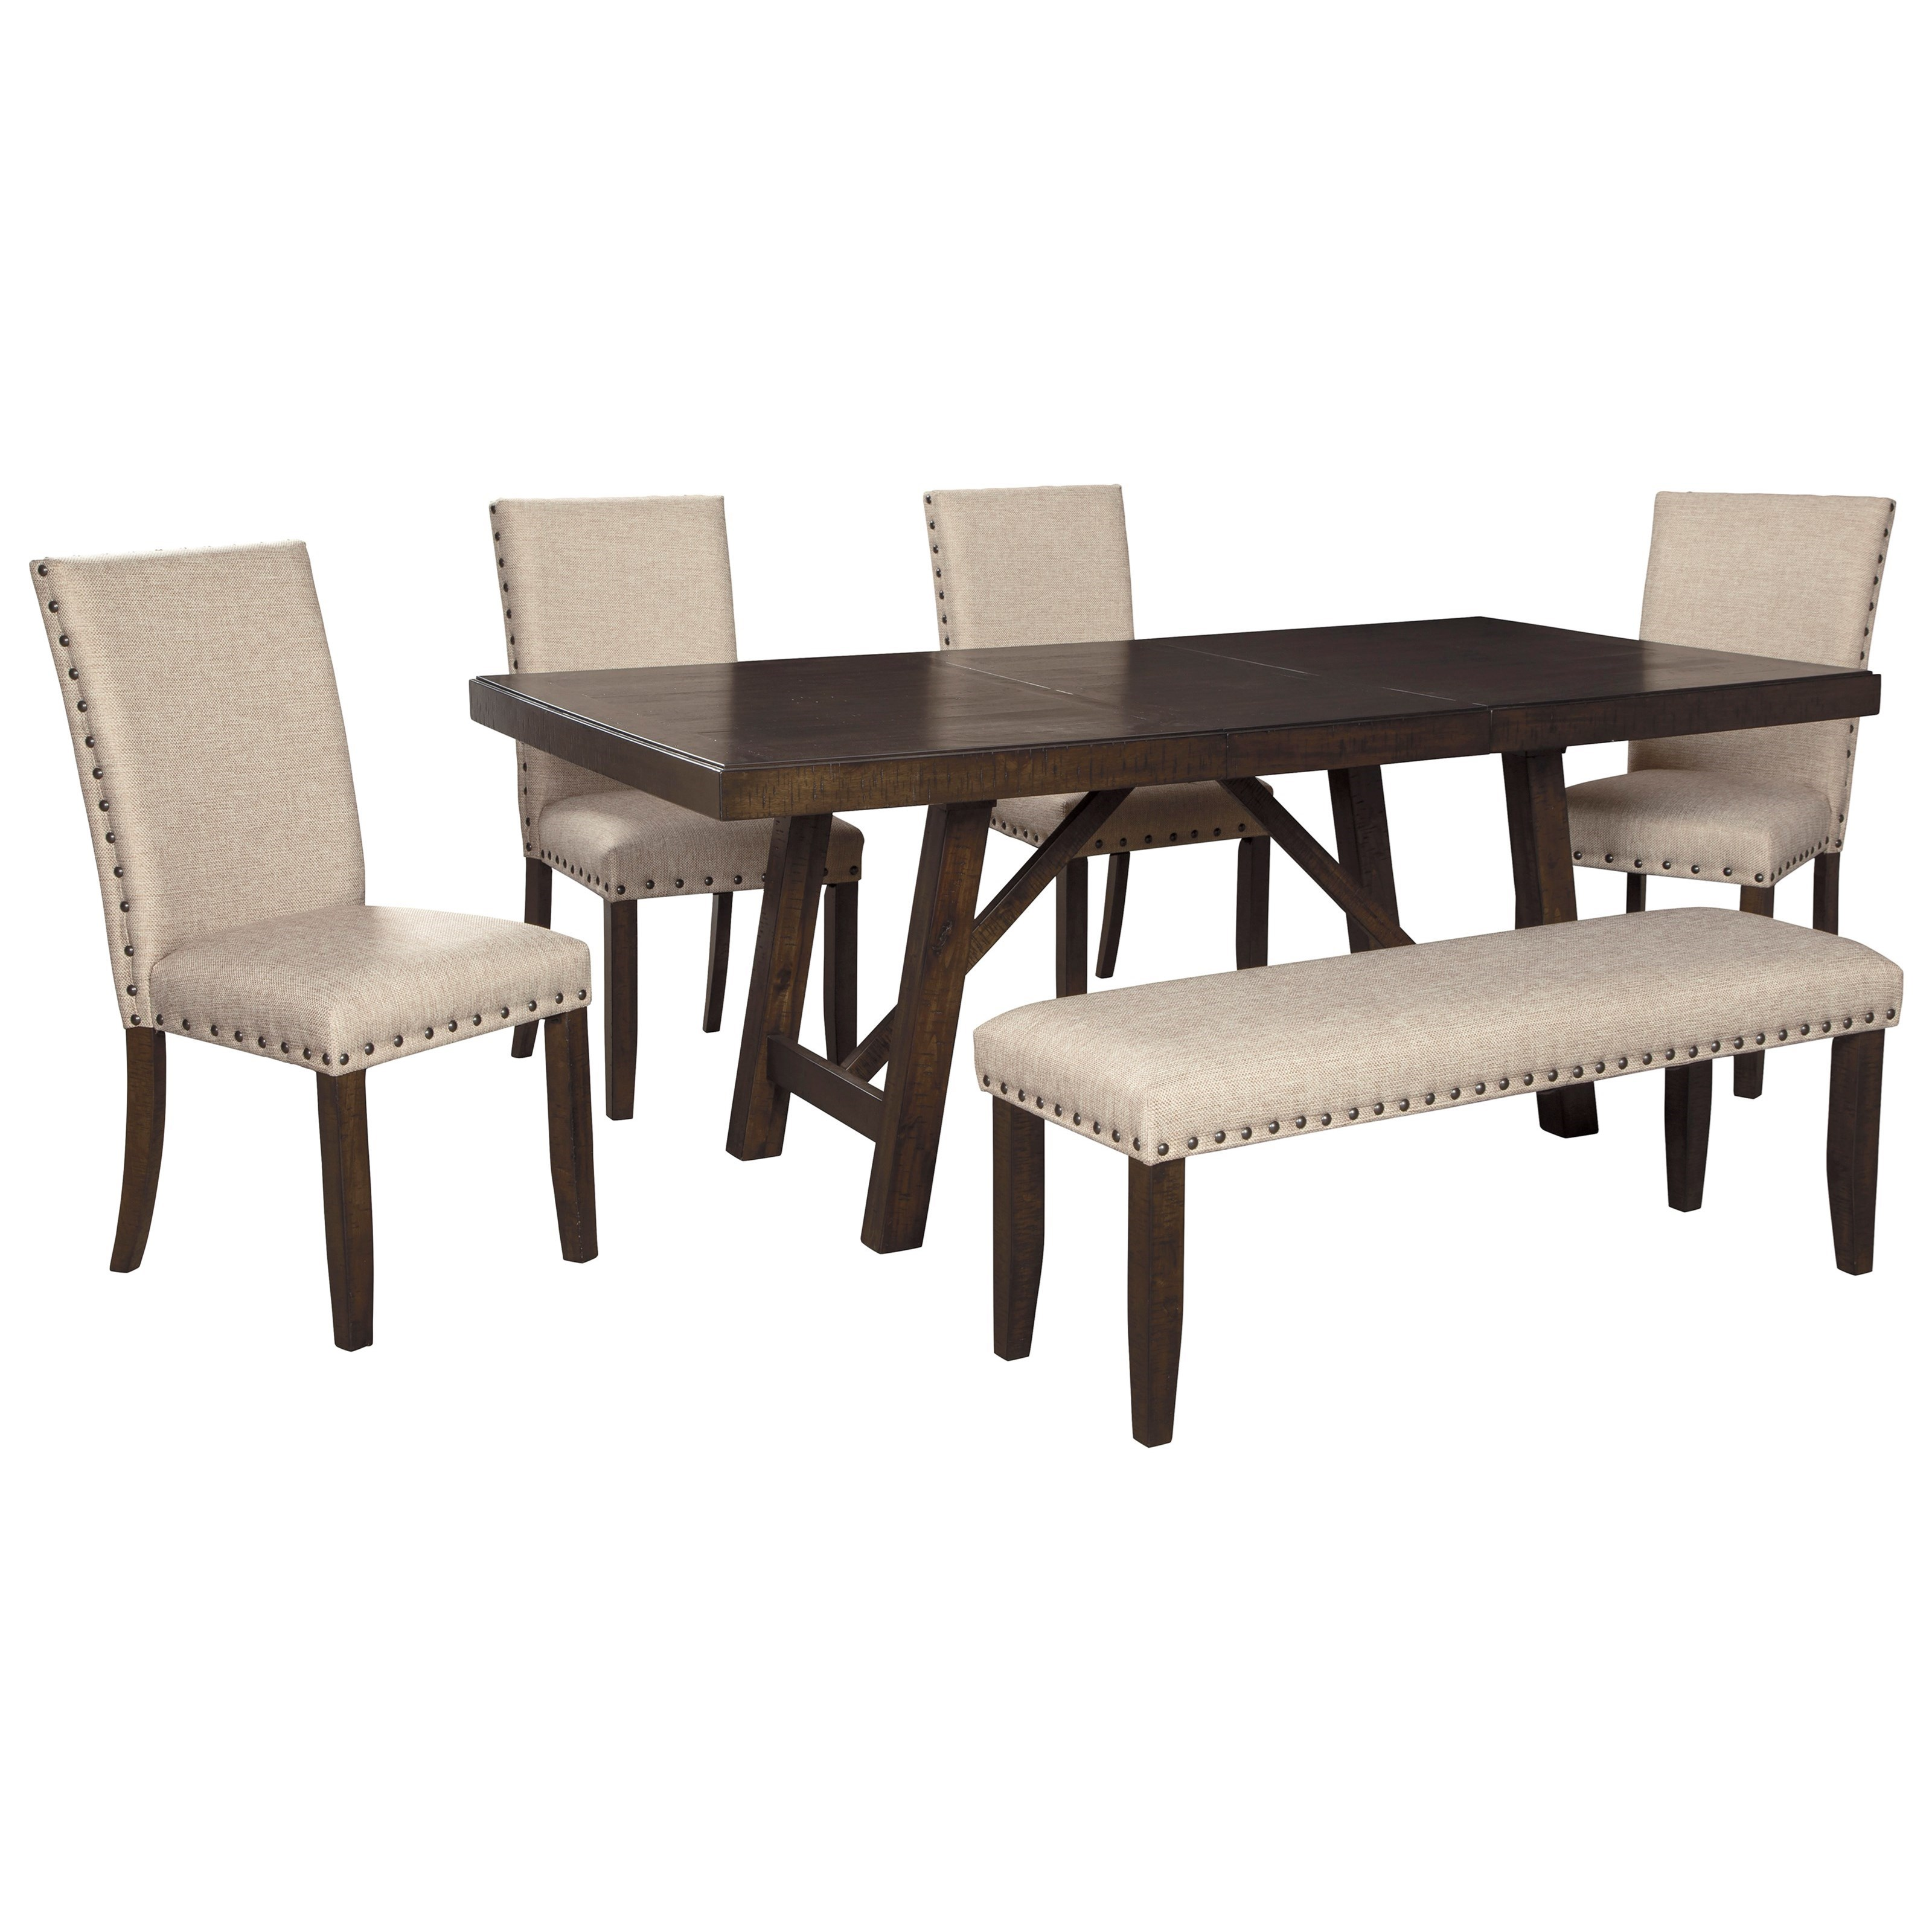 Ashley Signature Design Rokane D397 35 4x02 00 Dining Table Set For Six With Bench Dunk Bright Furniture Table Chair Set With Bench